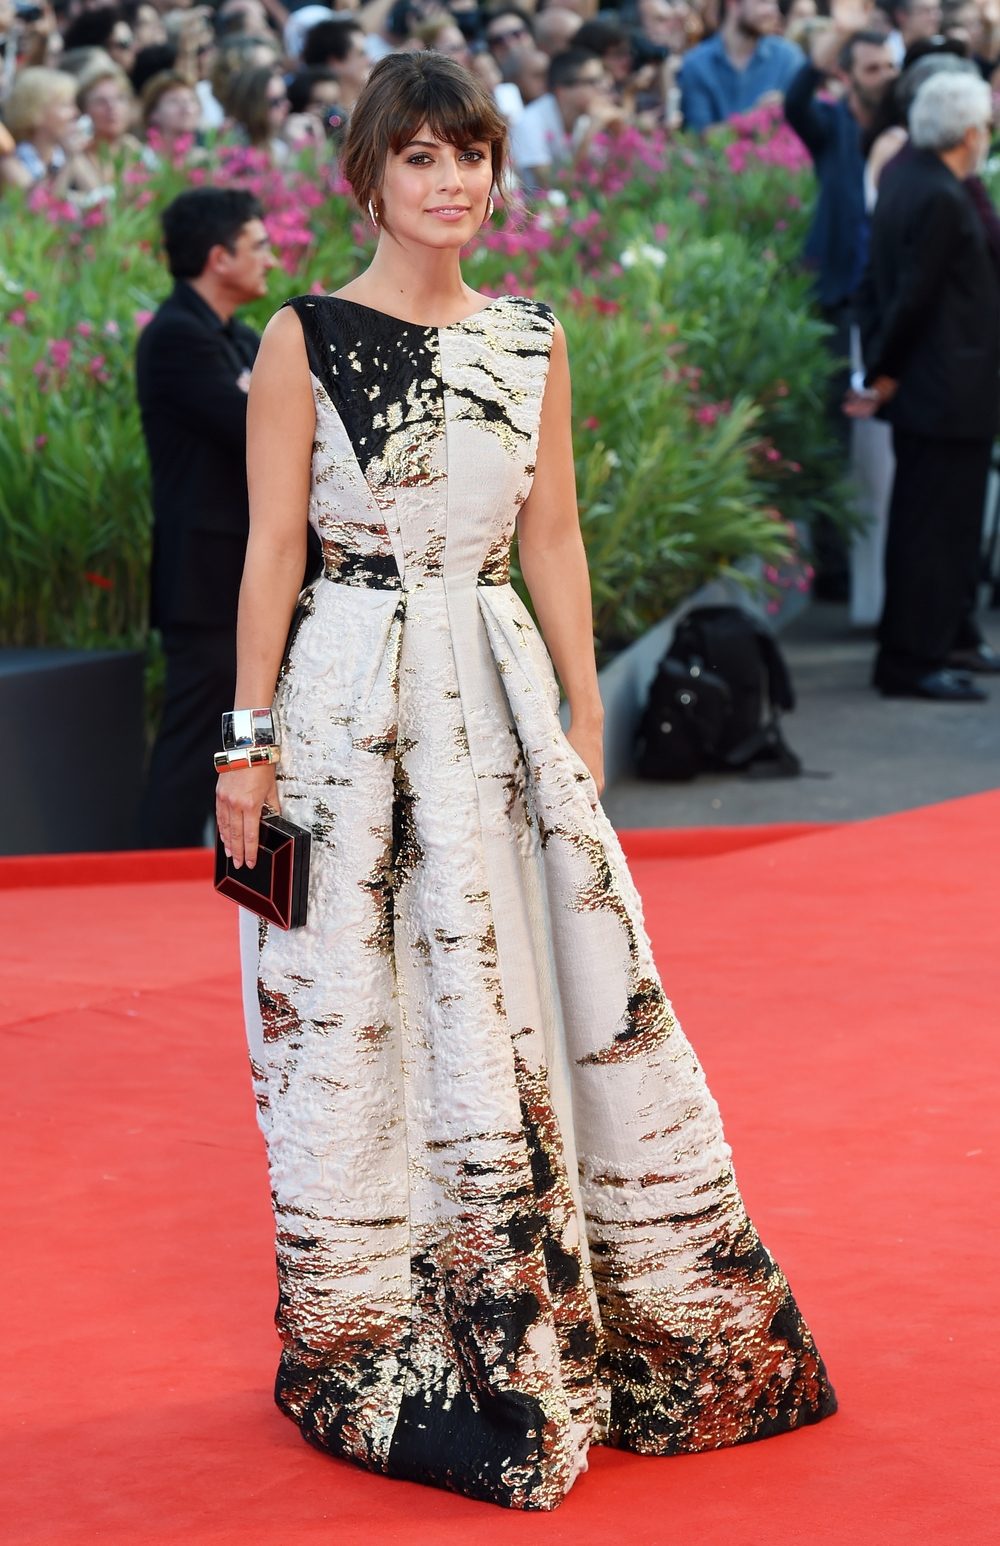 Alessandra Mastronardi - Venice Film Festival Opening Ceremony - Getty Images high res.jpg